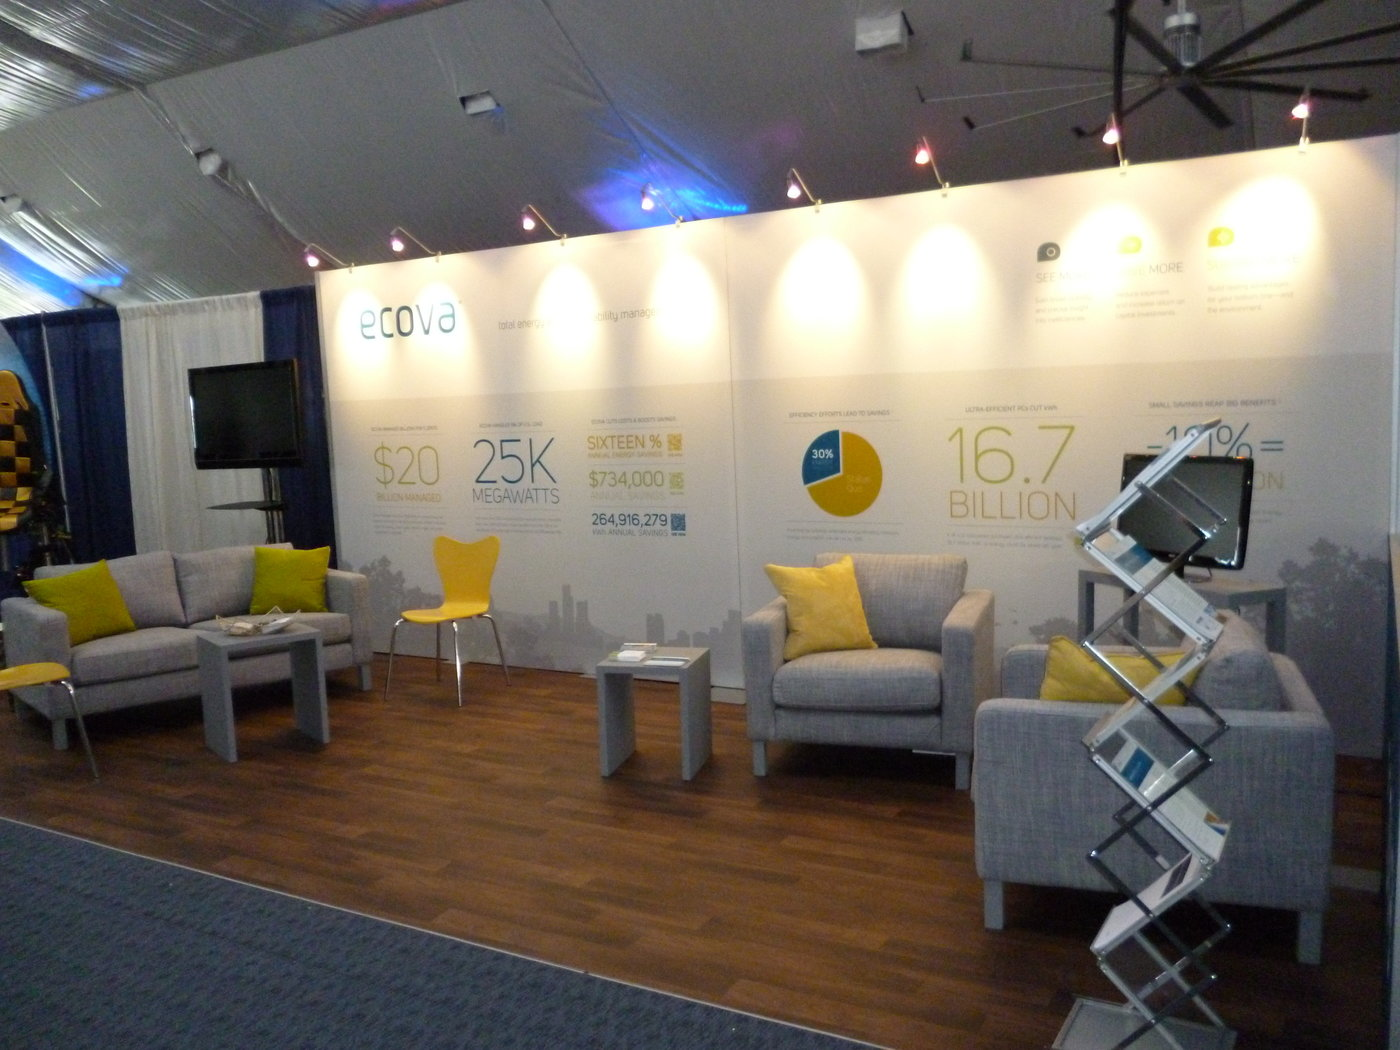 Trade Show Booth Graphics : Digital trade show display change your graphics instantly